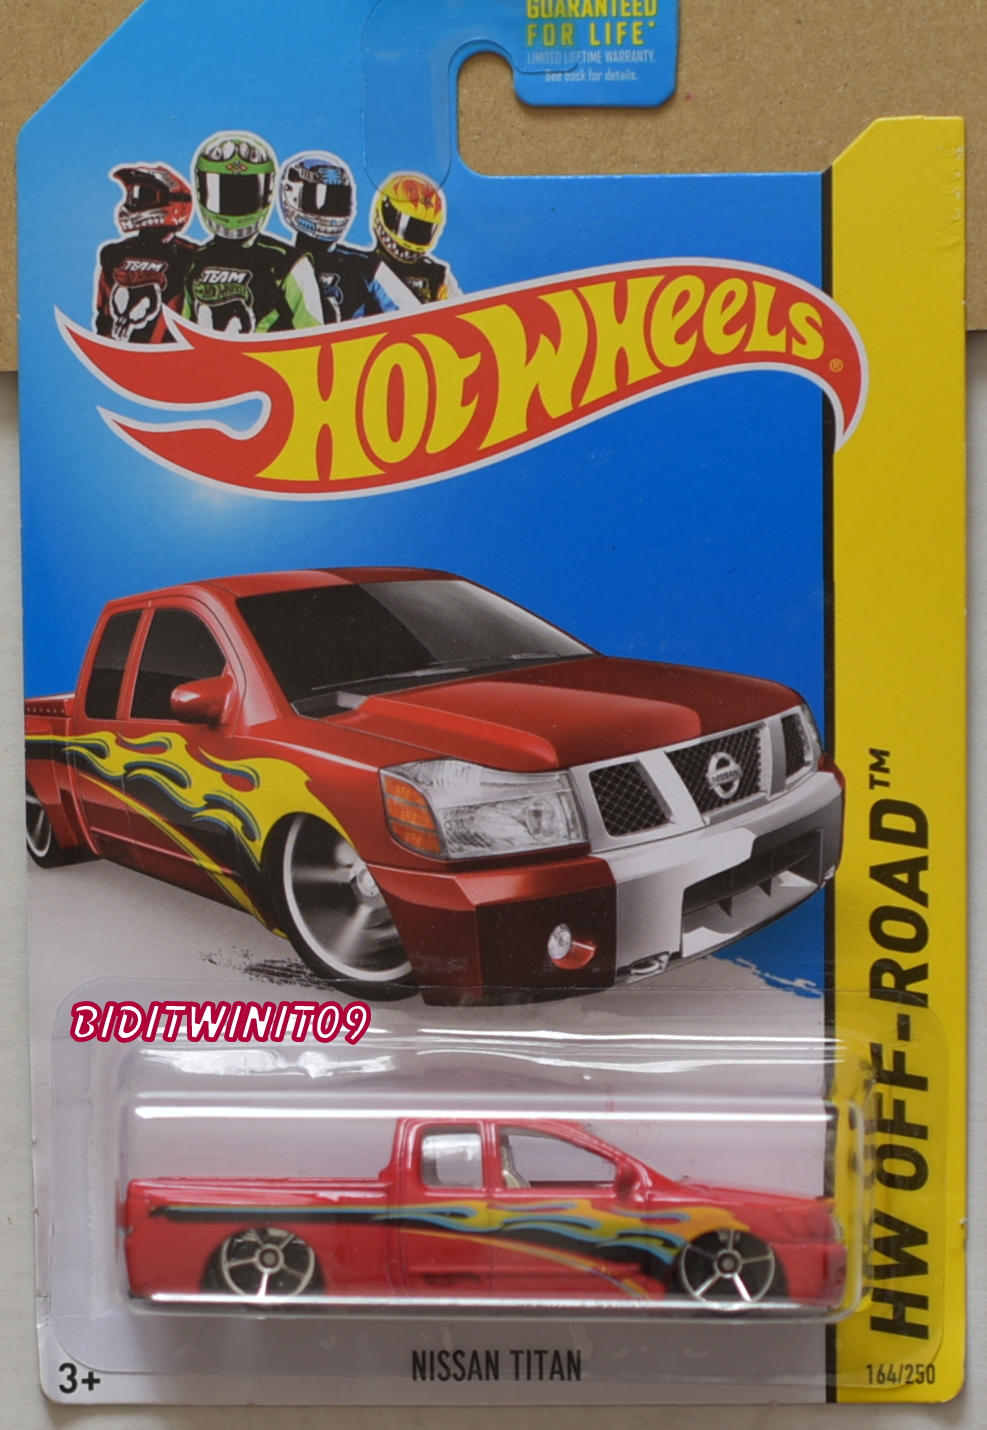 HOT WHEELS 2013 HOT TRUCKS - HW OFF-ROAD NISSAN TITAN KMART RED